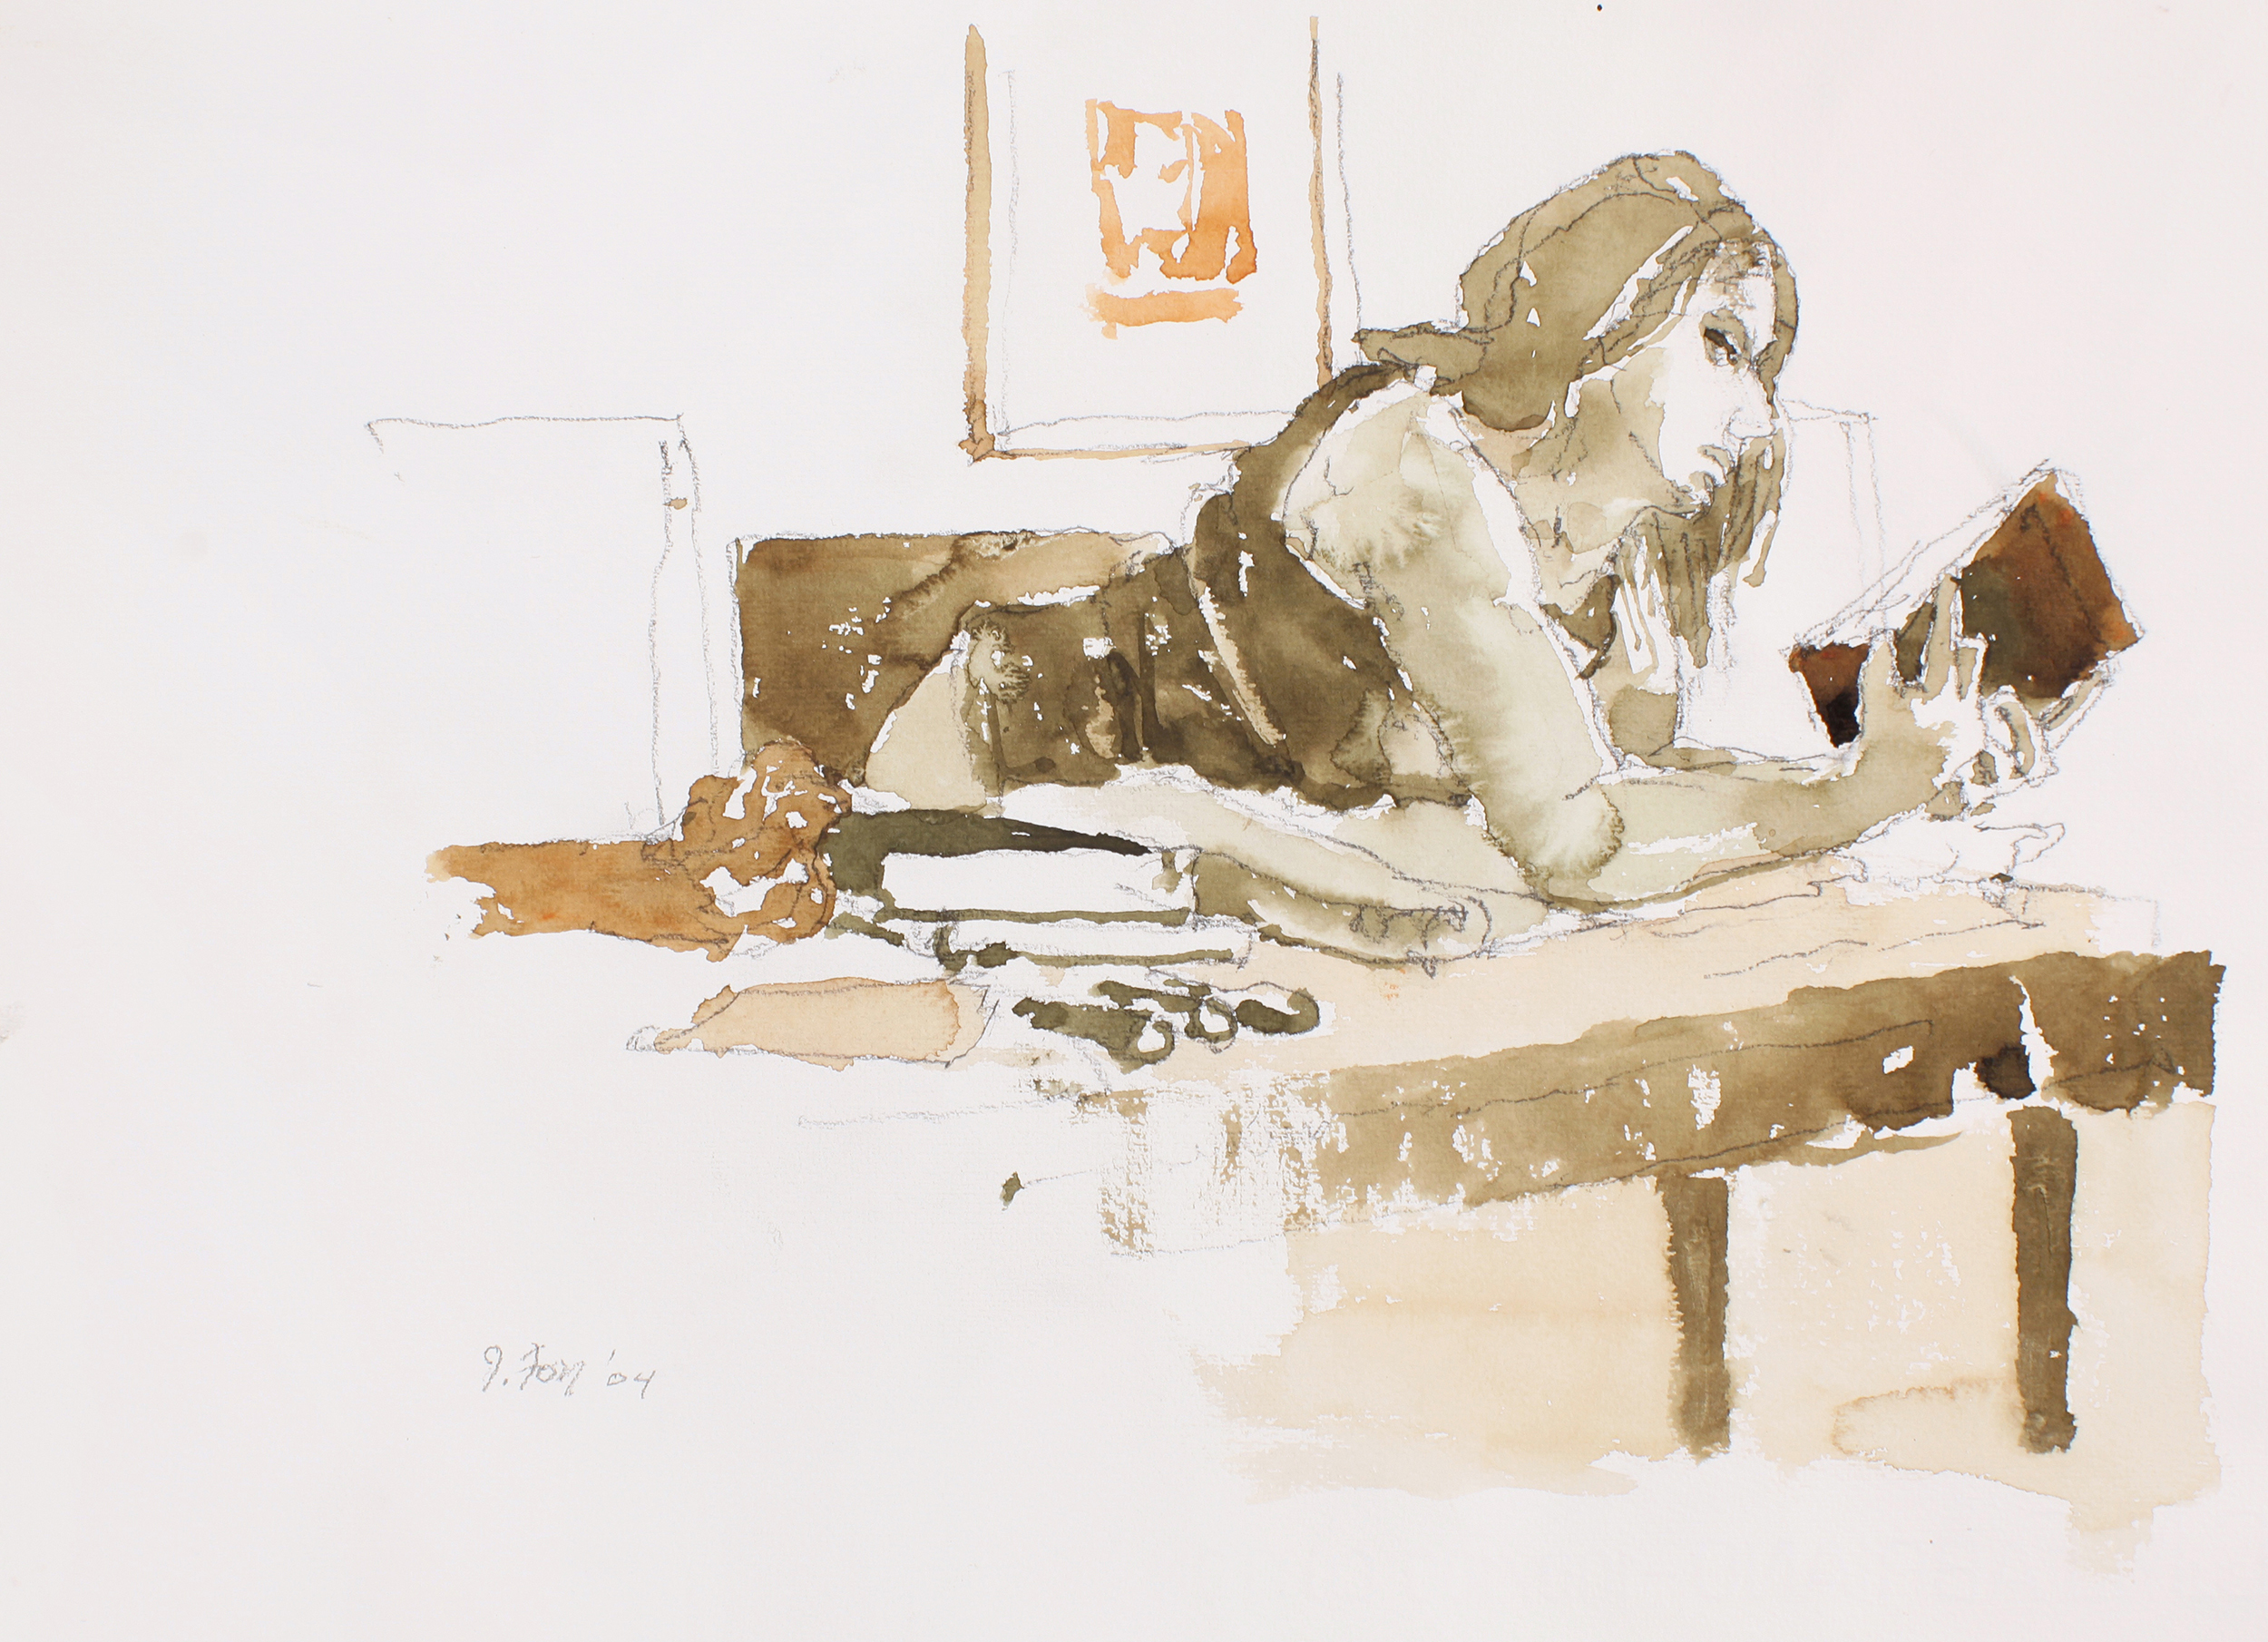 2004_Female_Figure_Seated_at_a_Table_Holding_Book_watercolour_and_pencil_on_paper_11x15in_WPF237.jpg